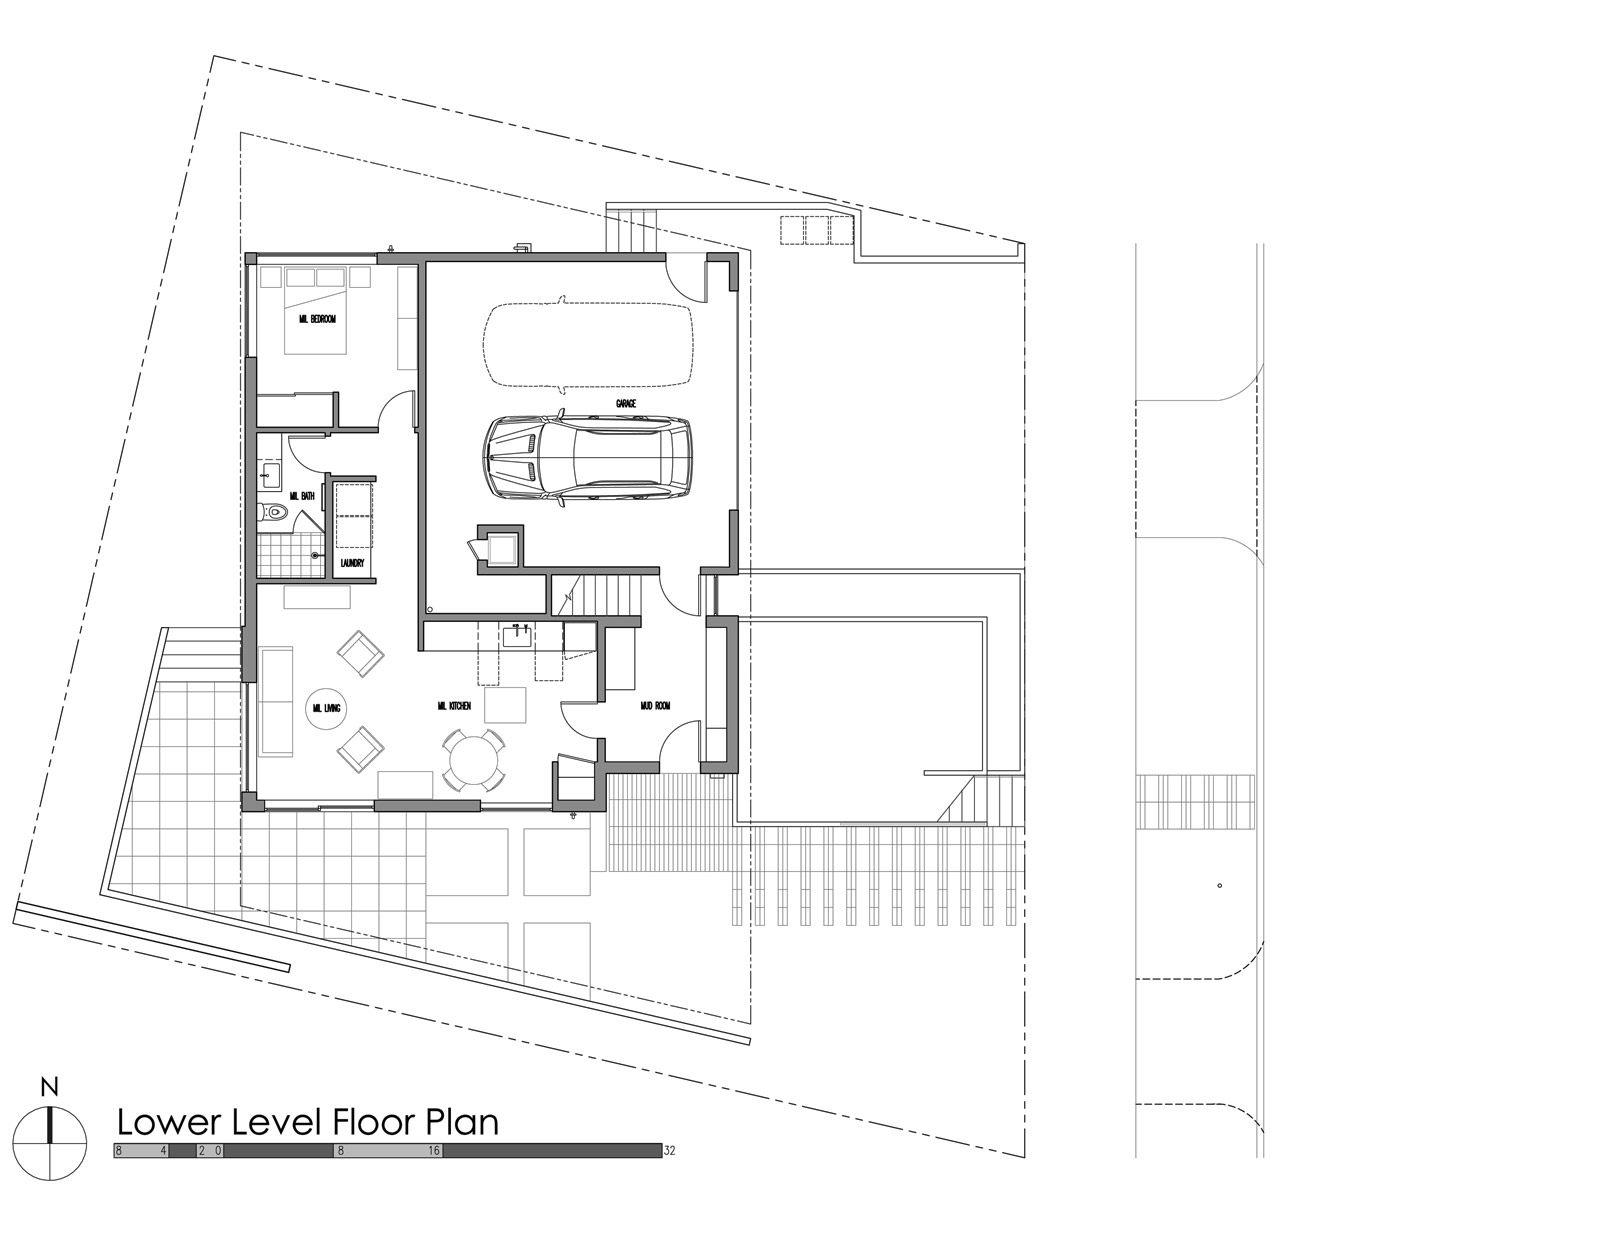 Case study house 2016 interiors archiweb 3 0 for Envelope house plans